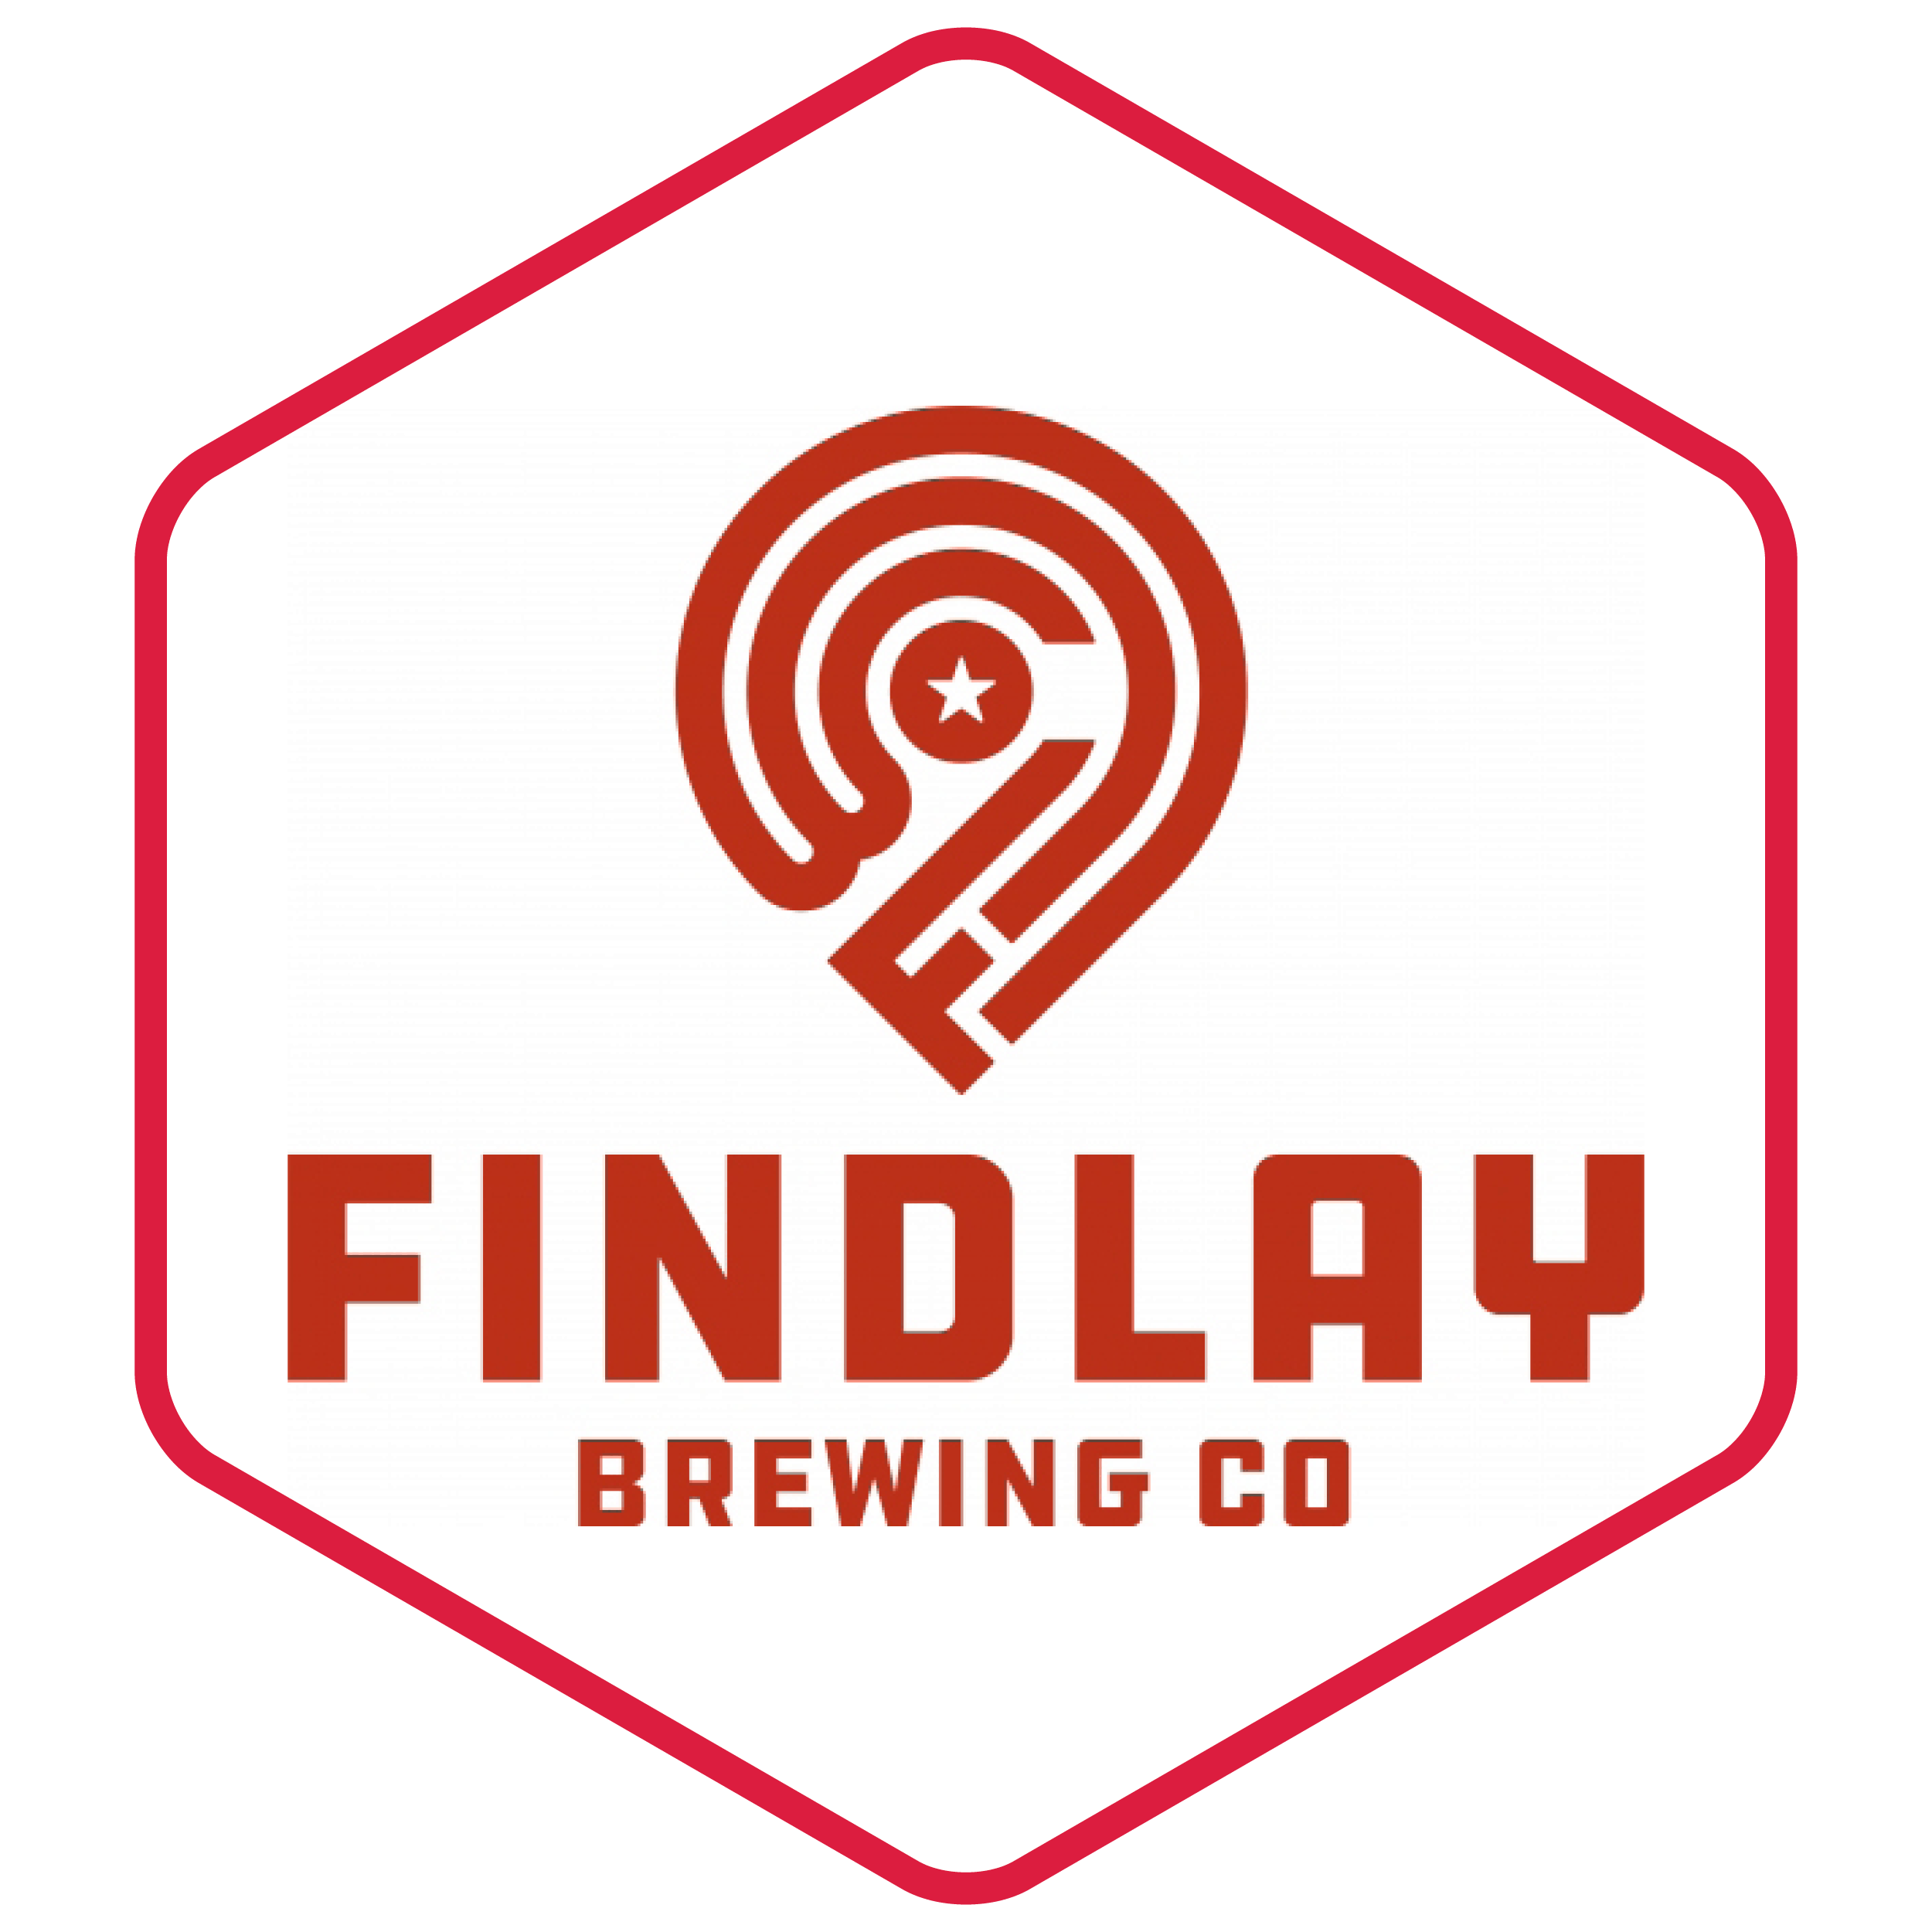 findlay brewing logo in a hexagon with a red border